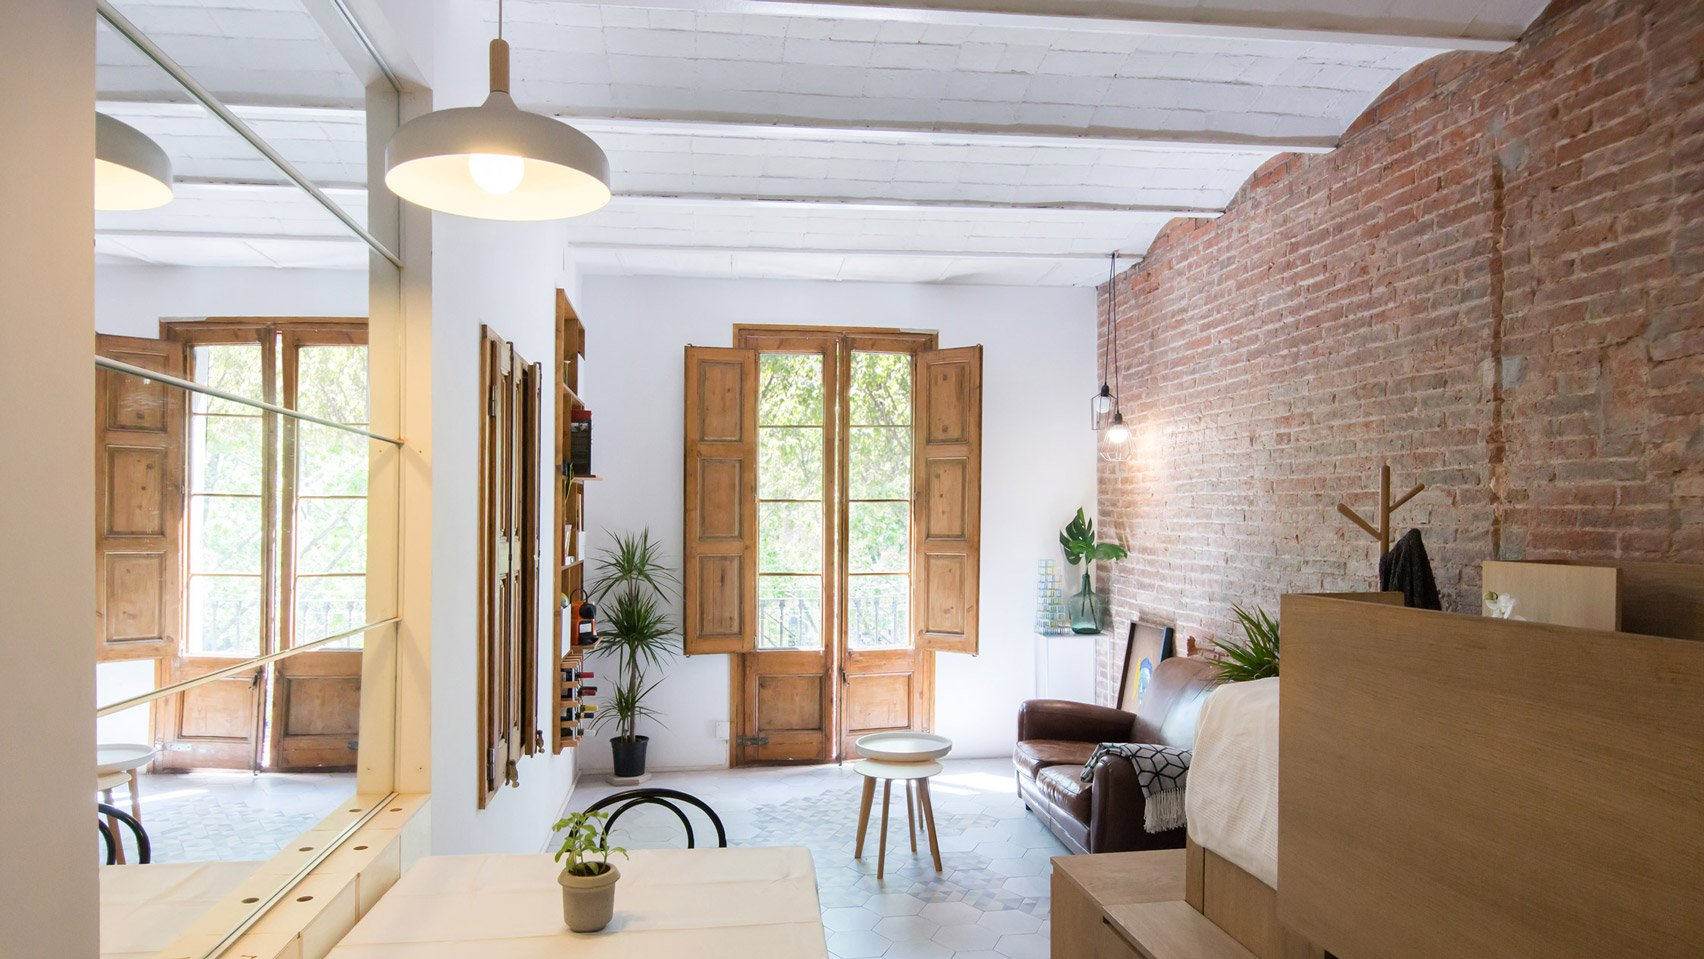 1. A 25 square metre apartment in Barcelona by Naimi Architecture - A 25-square-metre apartment in Barcelona by Naimi Architecture